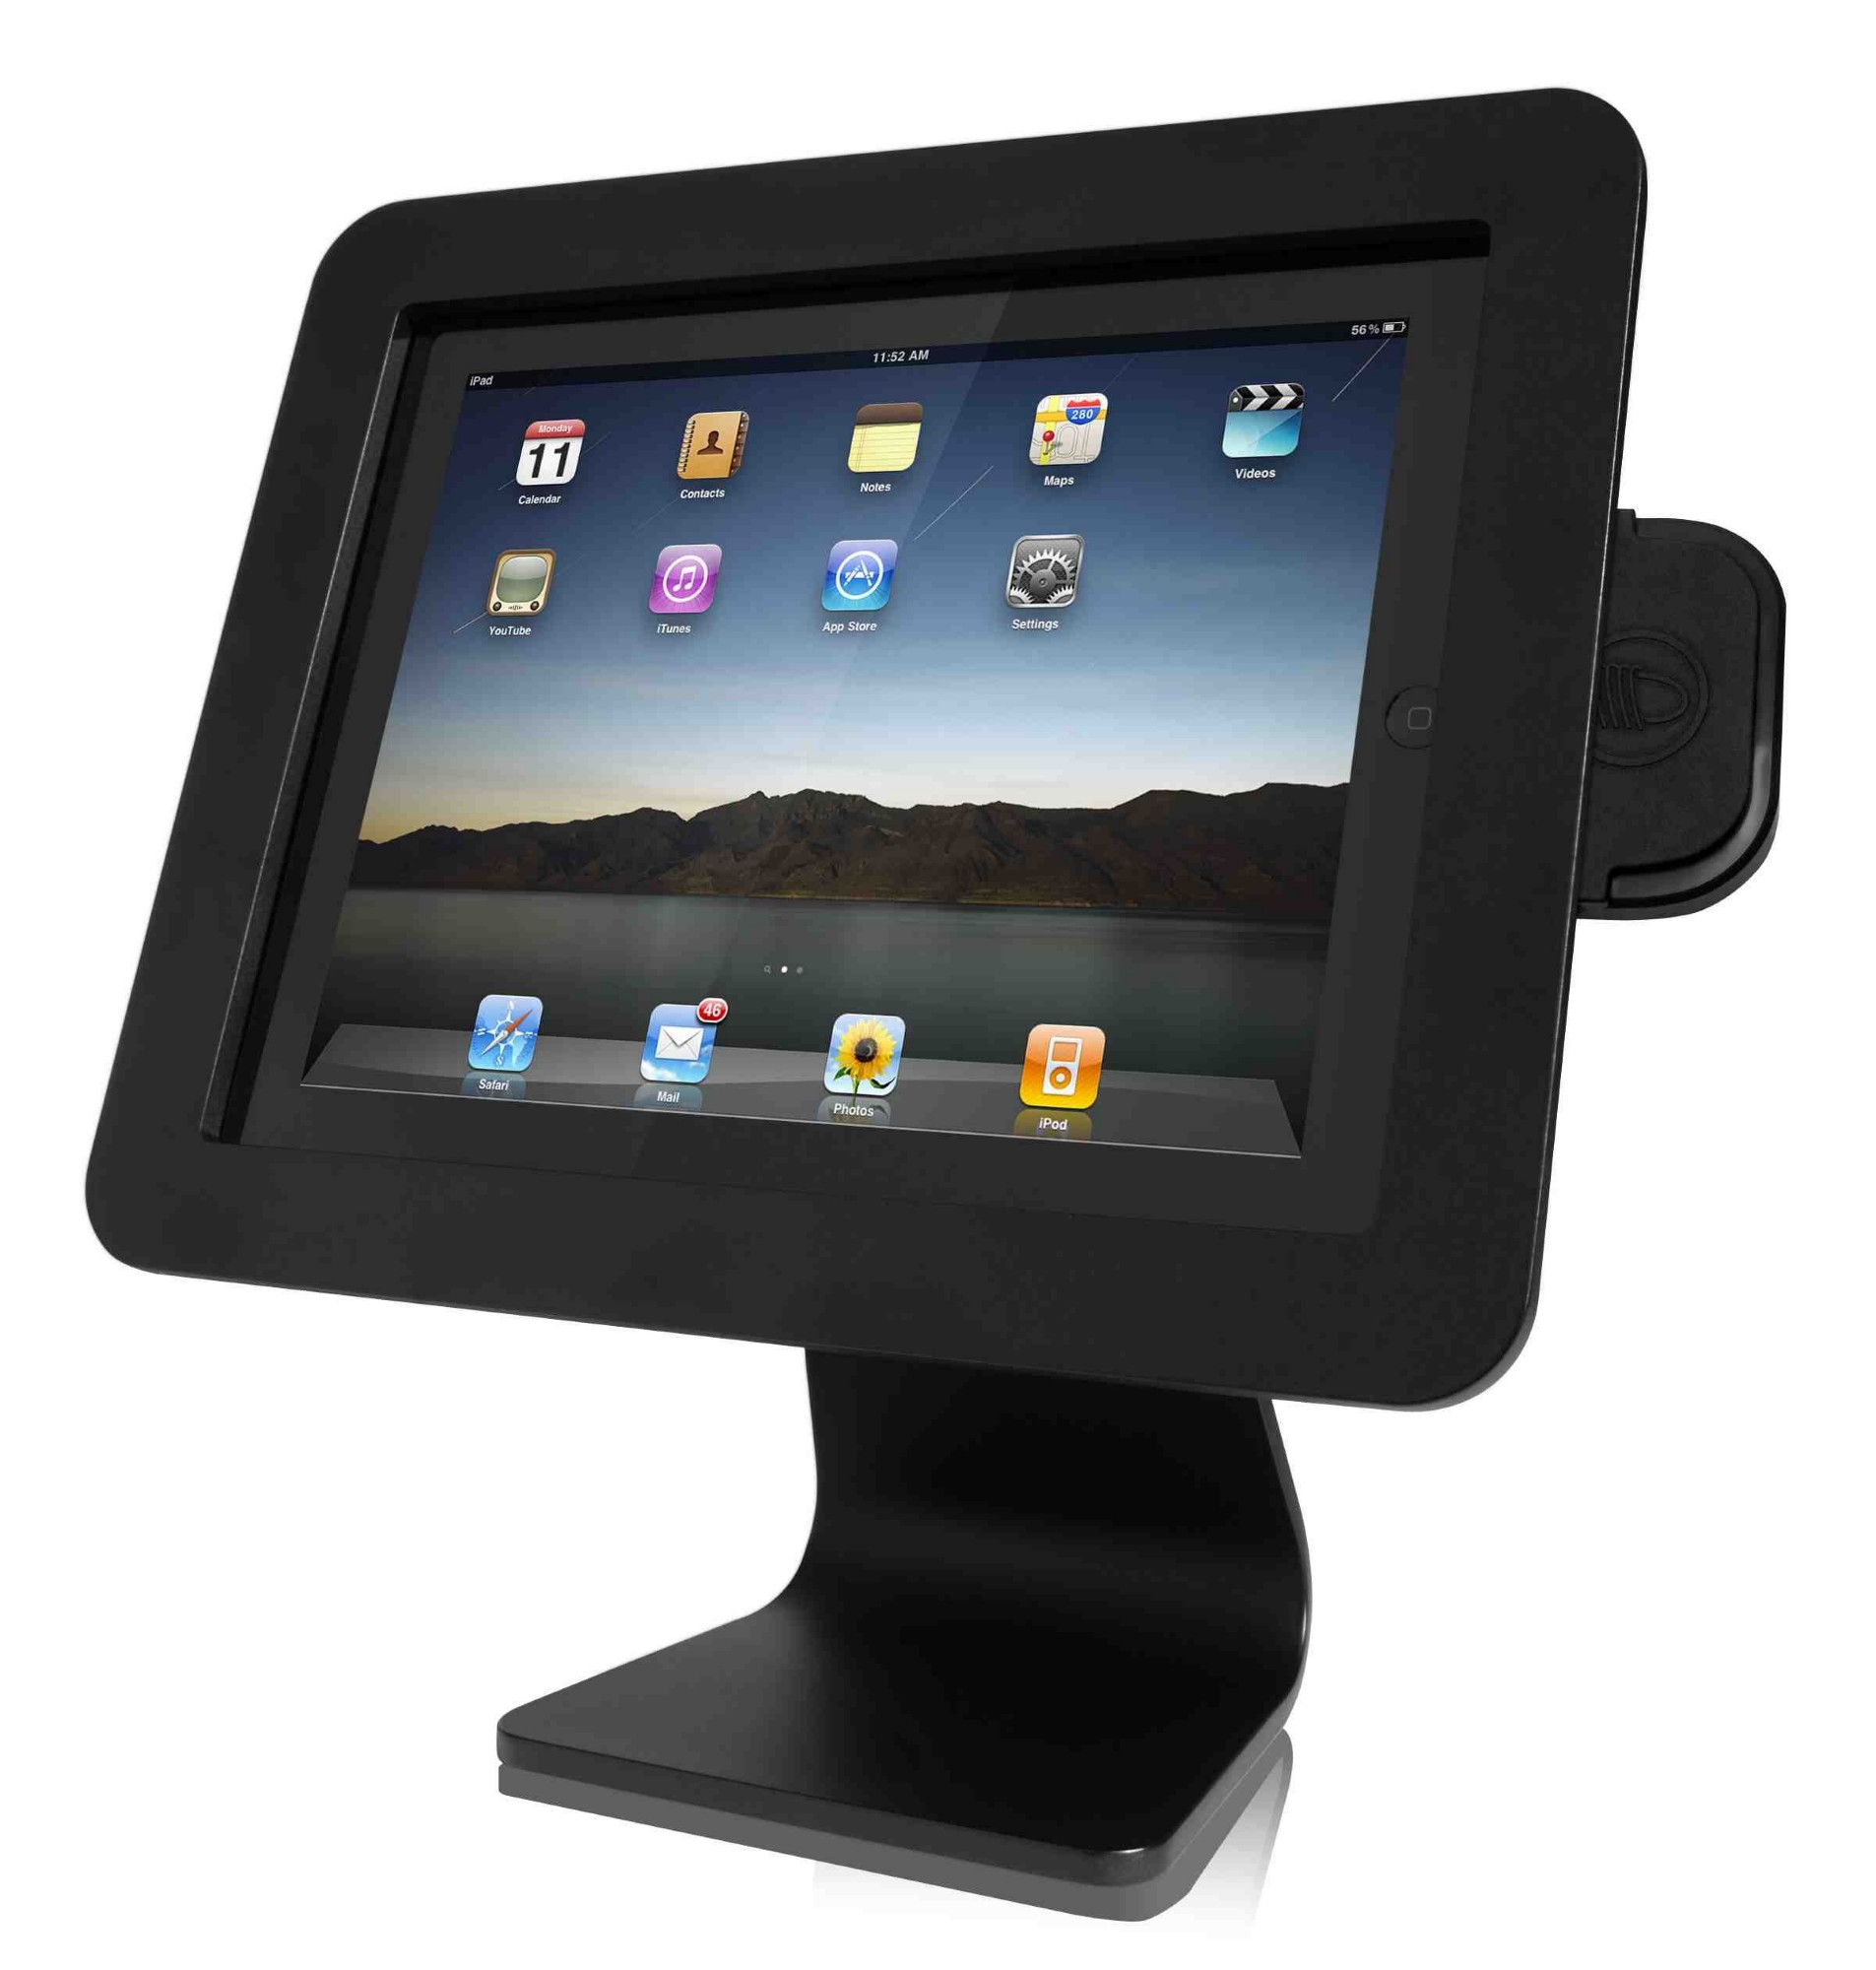 COMPULOCKS AIO-B IPAD ENCLOSURE KIOSK BLACK TABLET SECURITY